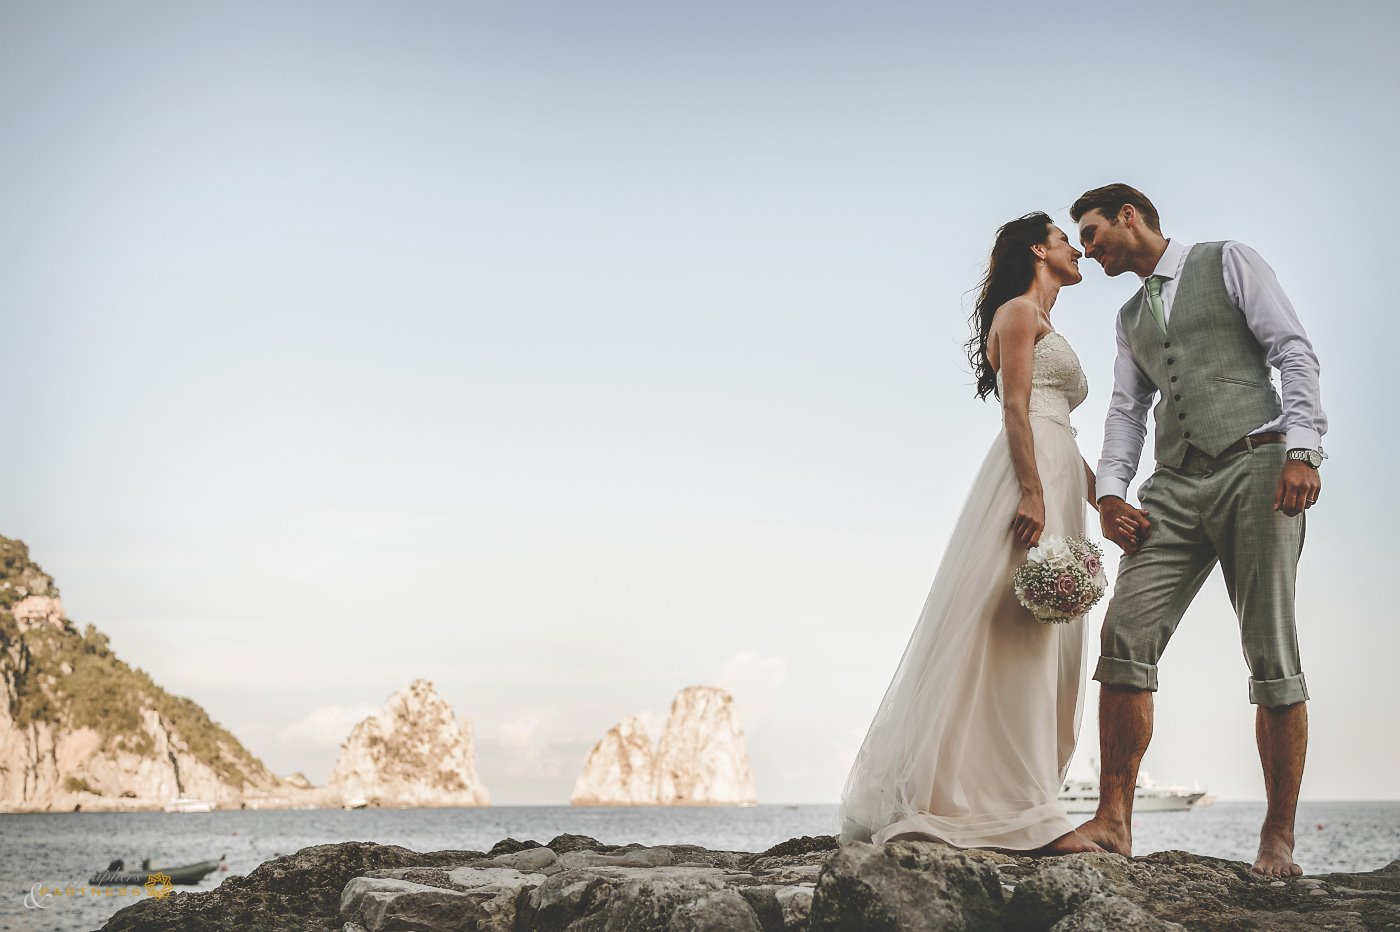 photography_weddings_capri_18.jpg